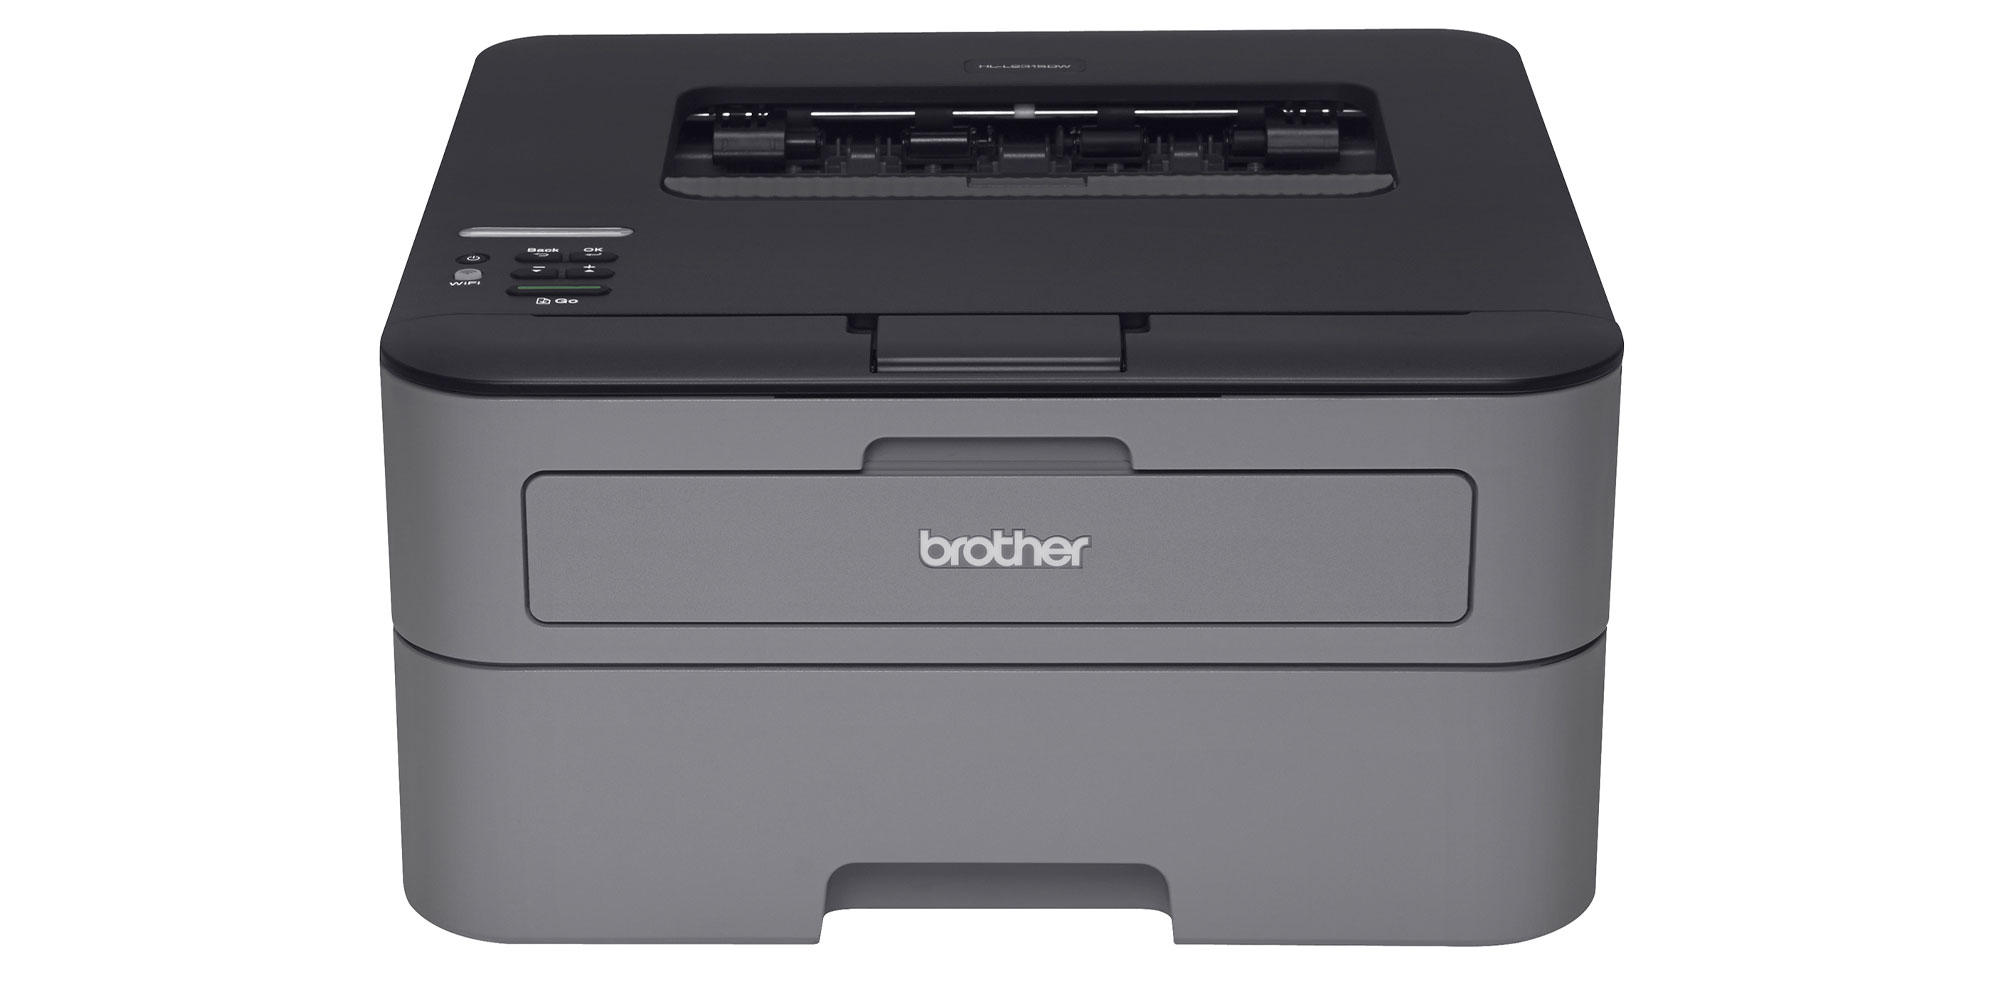 This $79 AirPrint-enabled Brother laser printer is perfect for college students & small businesses